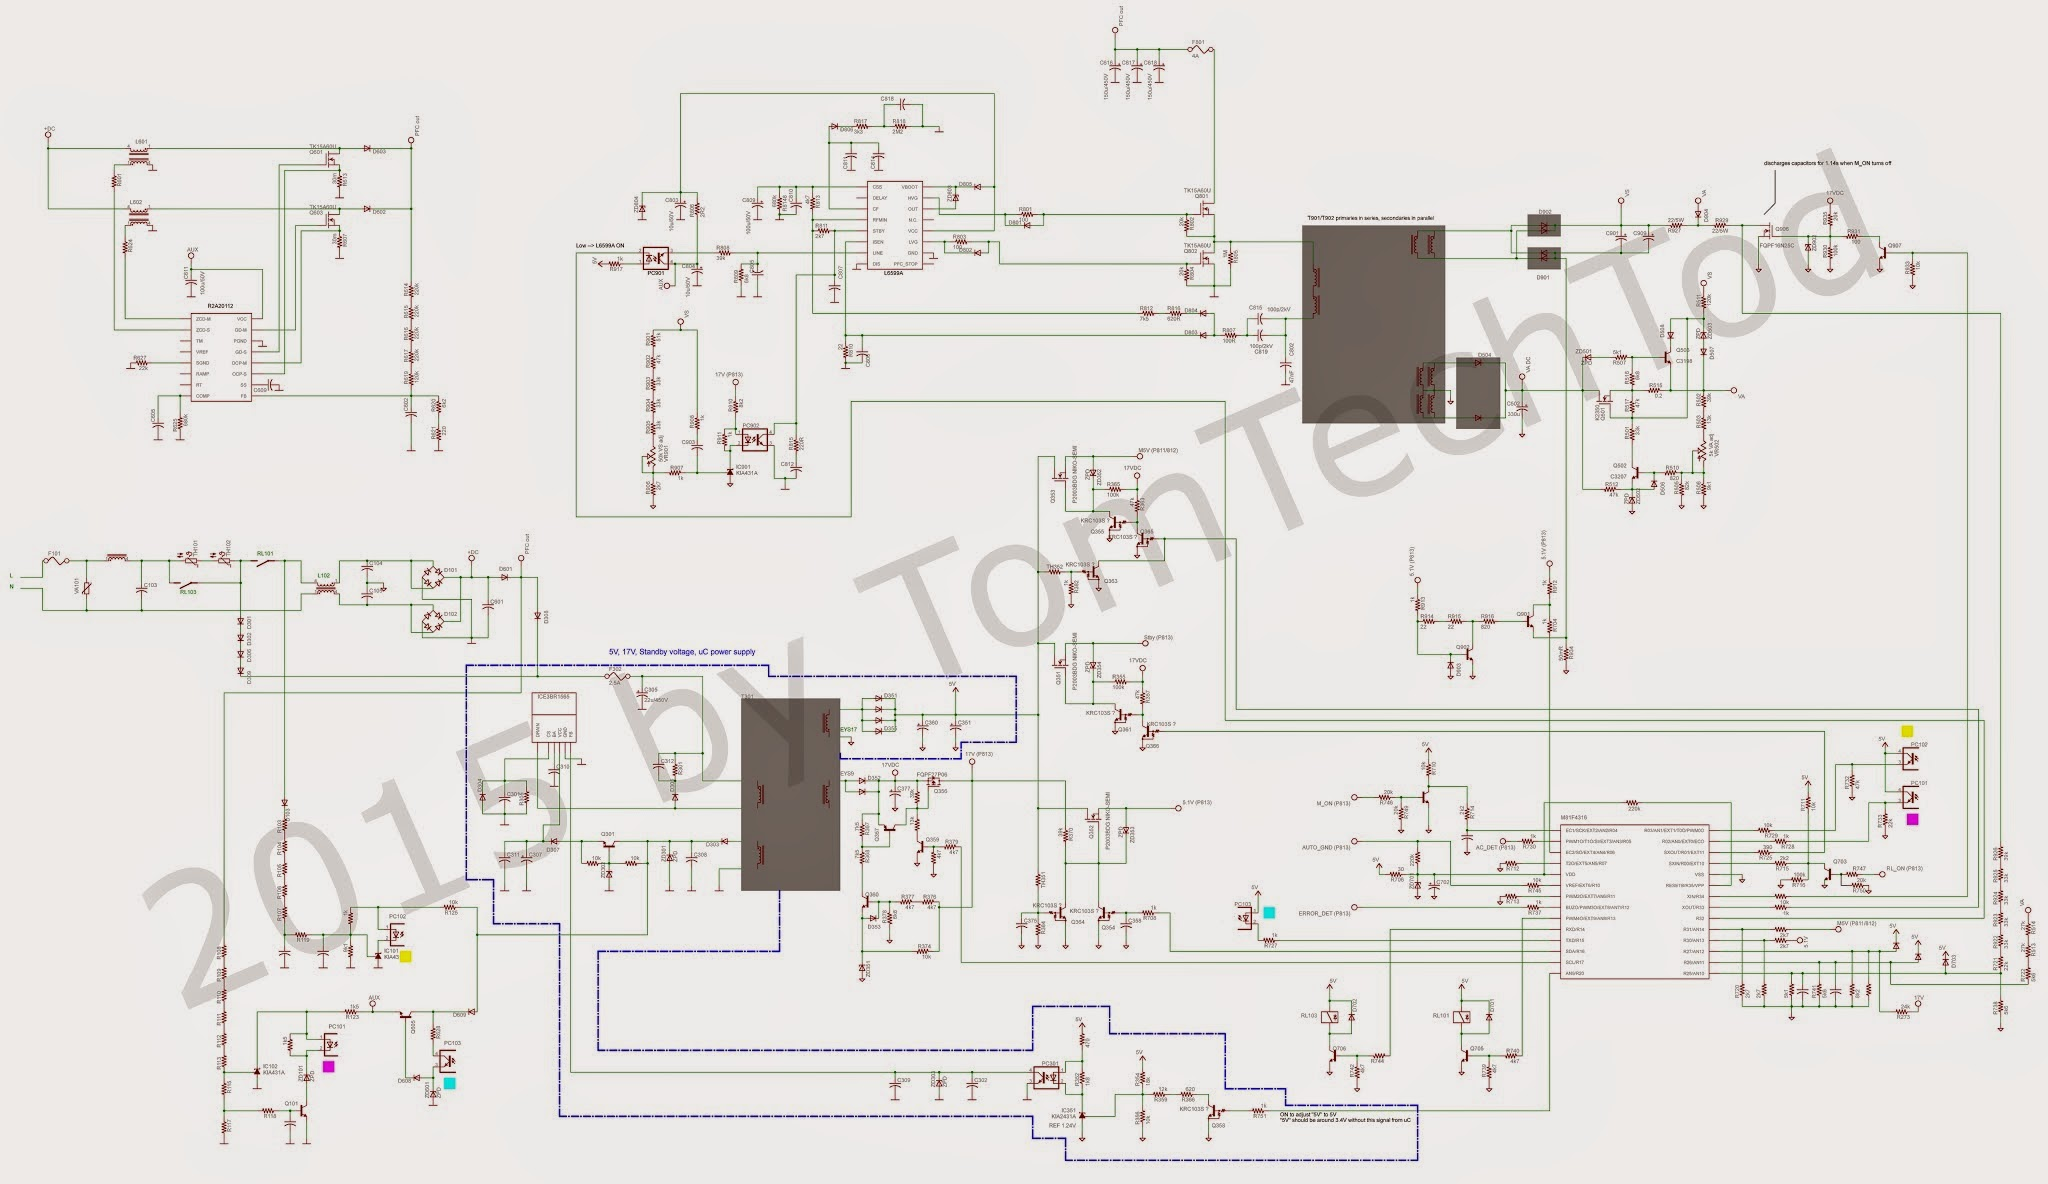 Electronics Repairs Lg Psu Board Eay60968801 Repair Schematics 50pk990 Za 50pk950 Ua 50pk750 50pk590 Ze 50pk550c Ud 50pk550 50pk540 Ue 50pk350 Zb 50px950 And Probably Others The Schematic Is Very Similar